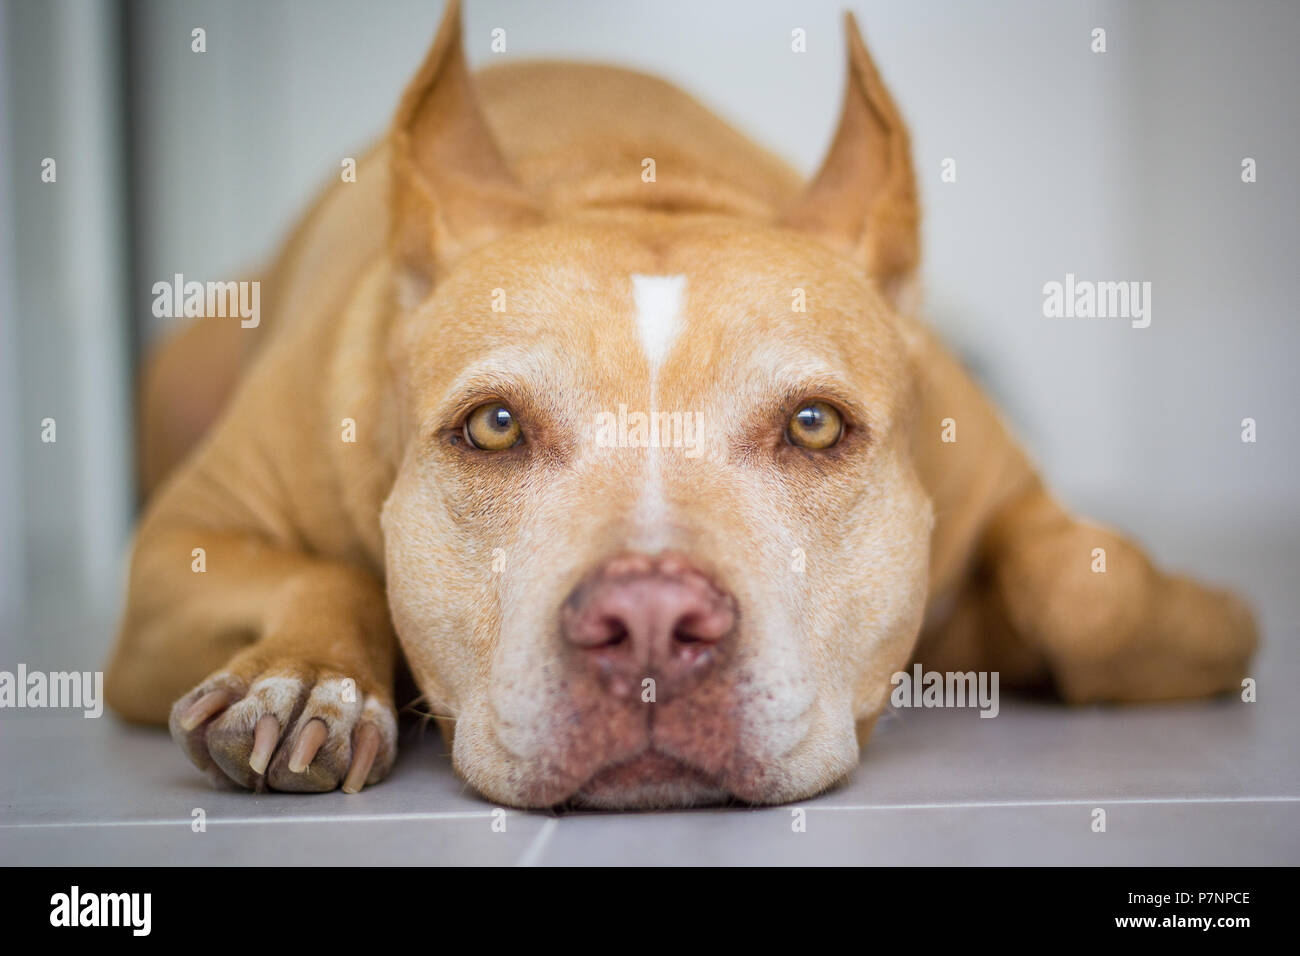 Red nose American pit bull terrier dog laying down looking into camera - Stock Image